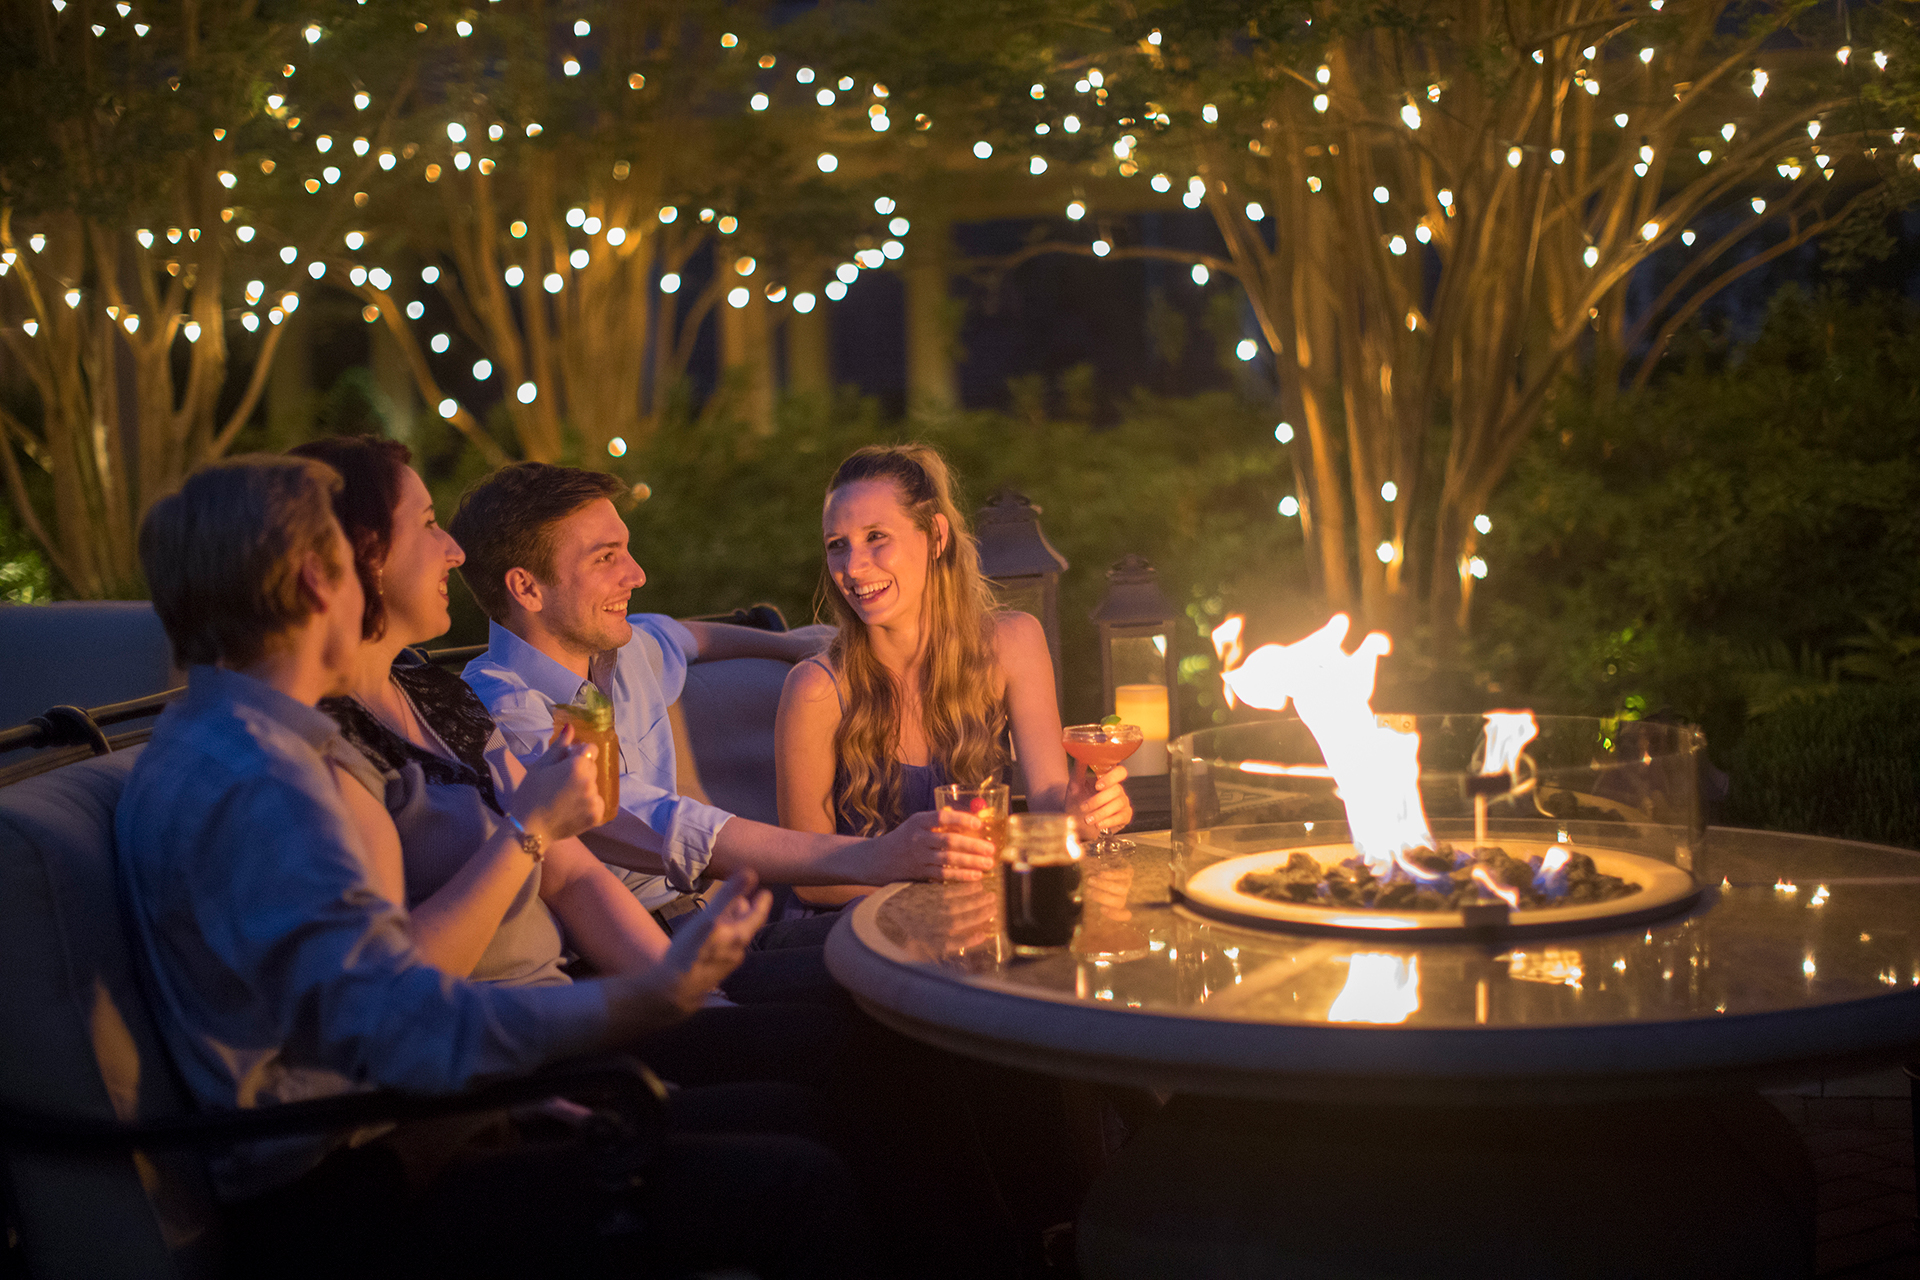 Couples socializing with drinks around fire pit